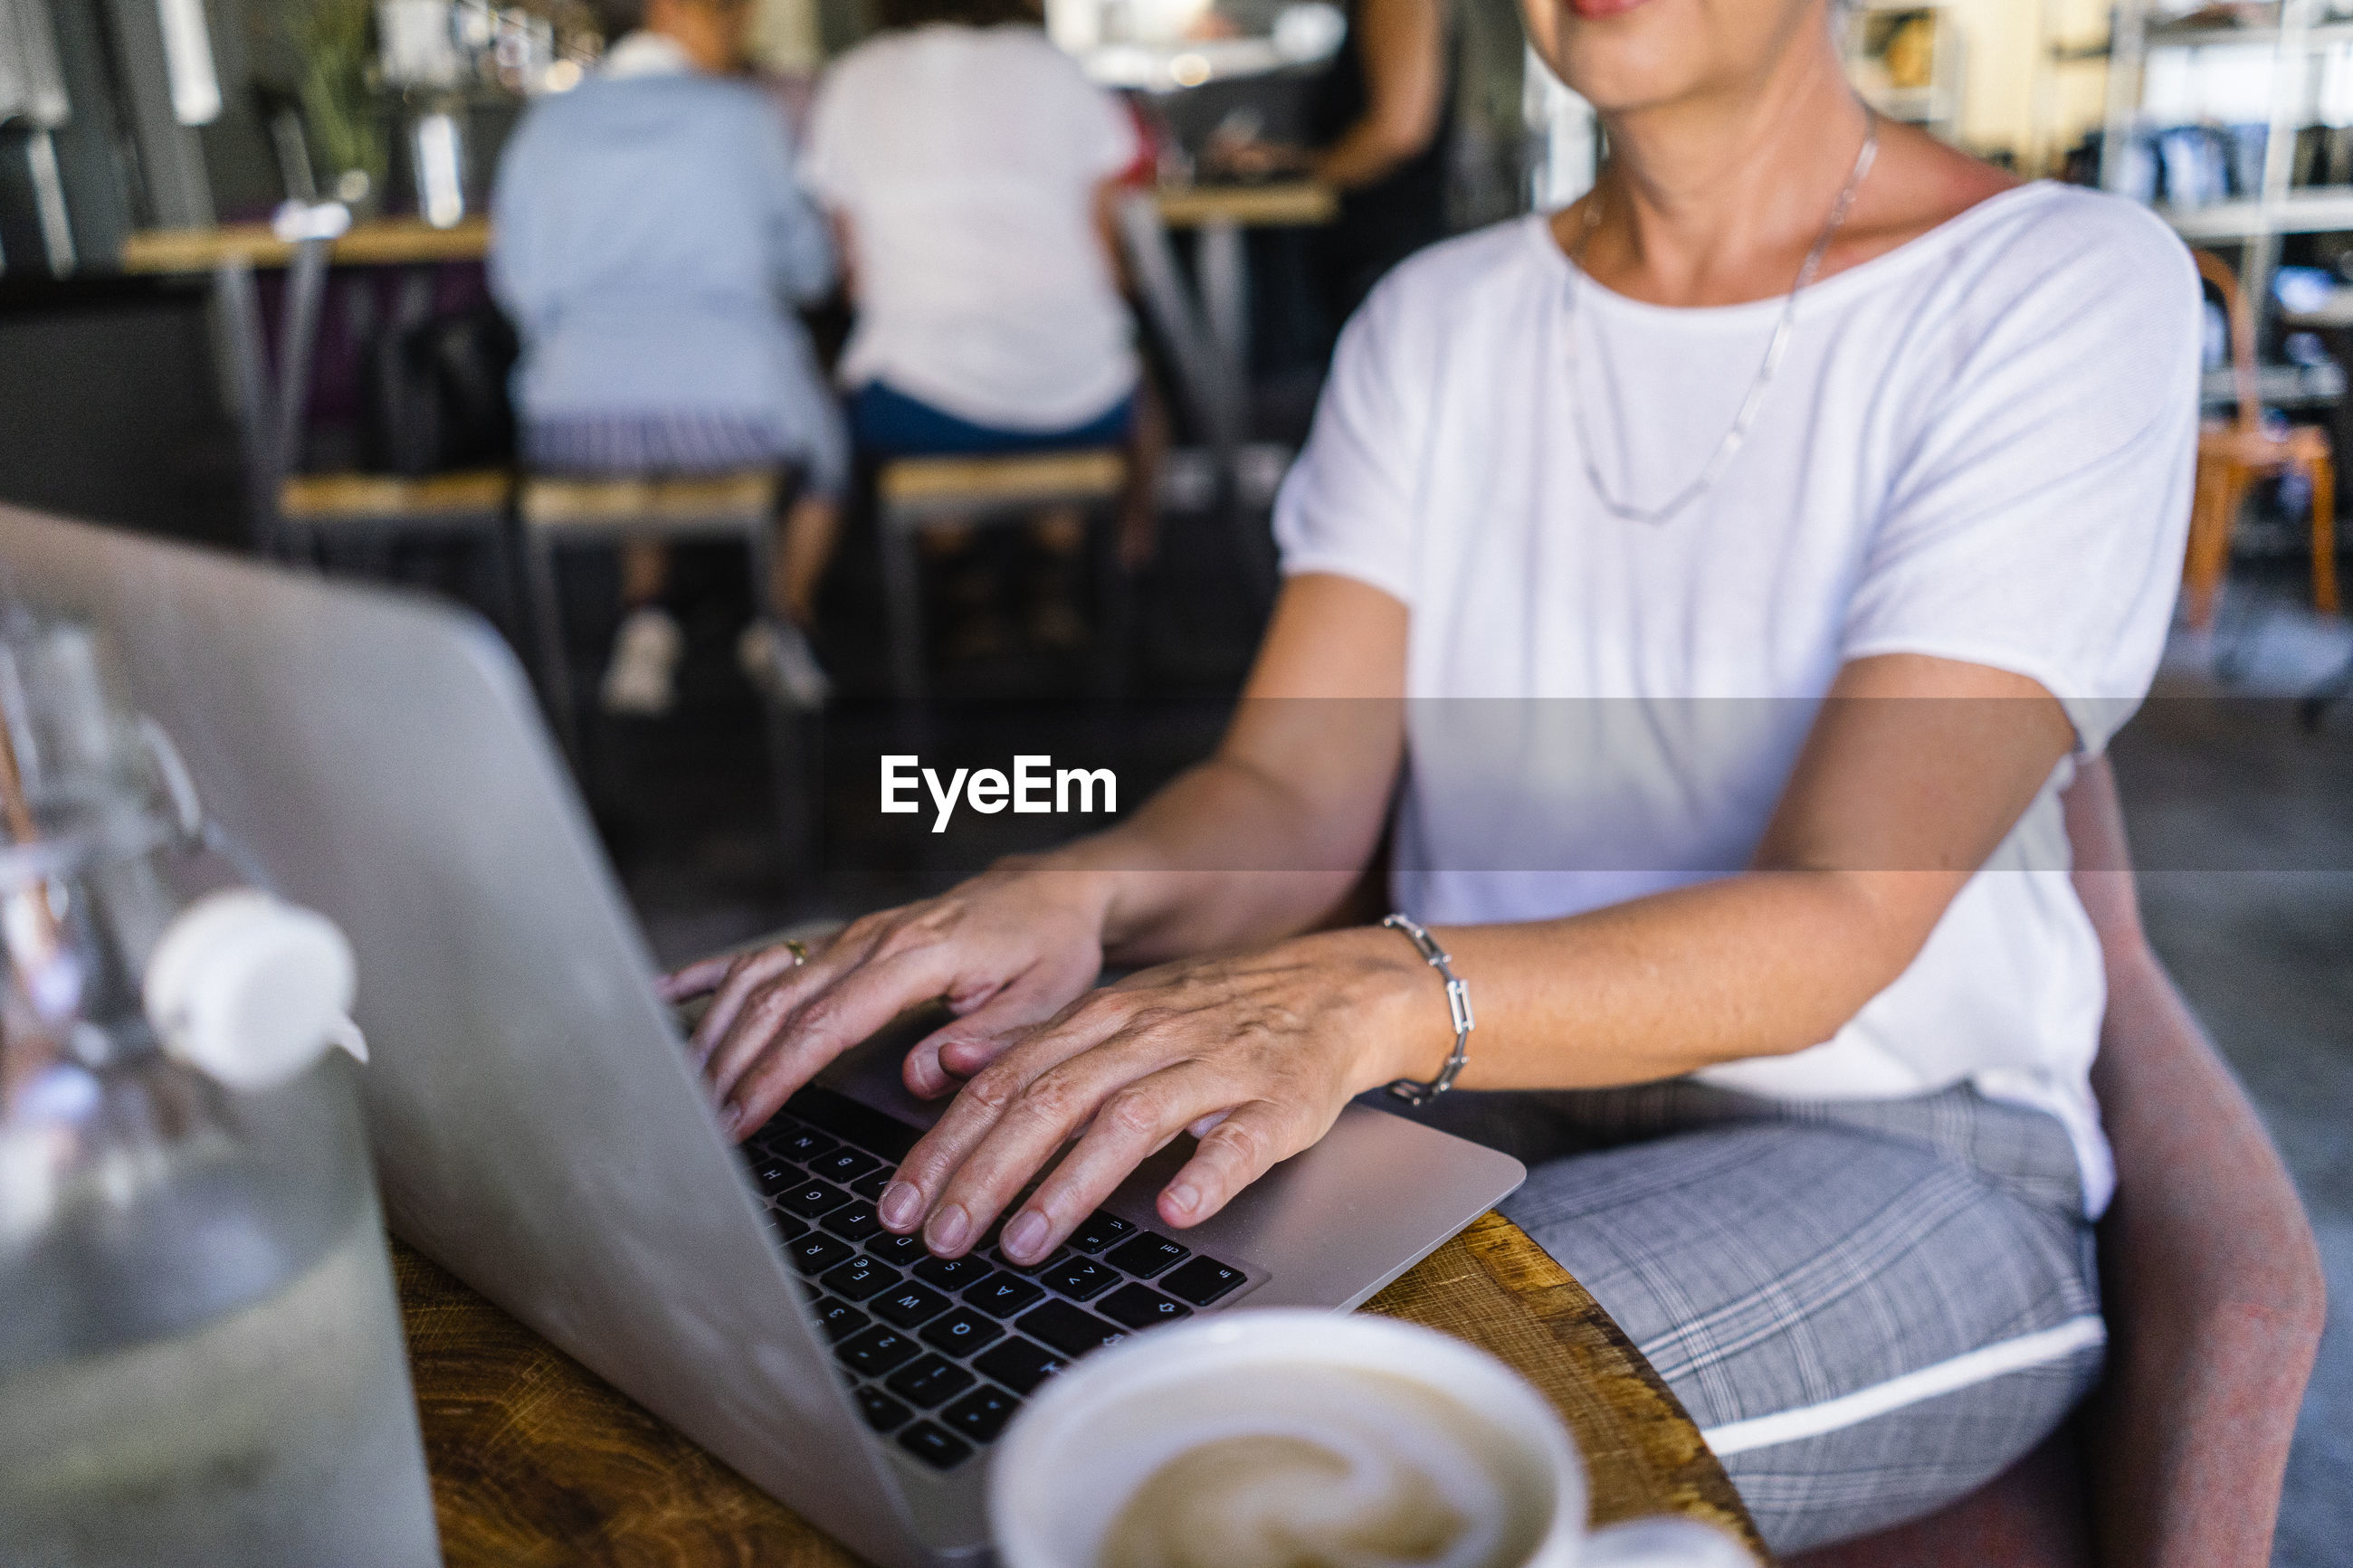 Midsection of woman using laptop on table in cafe